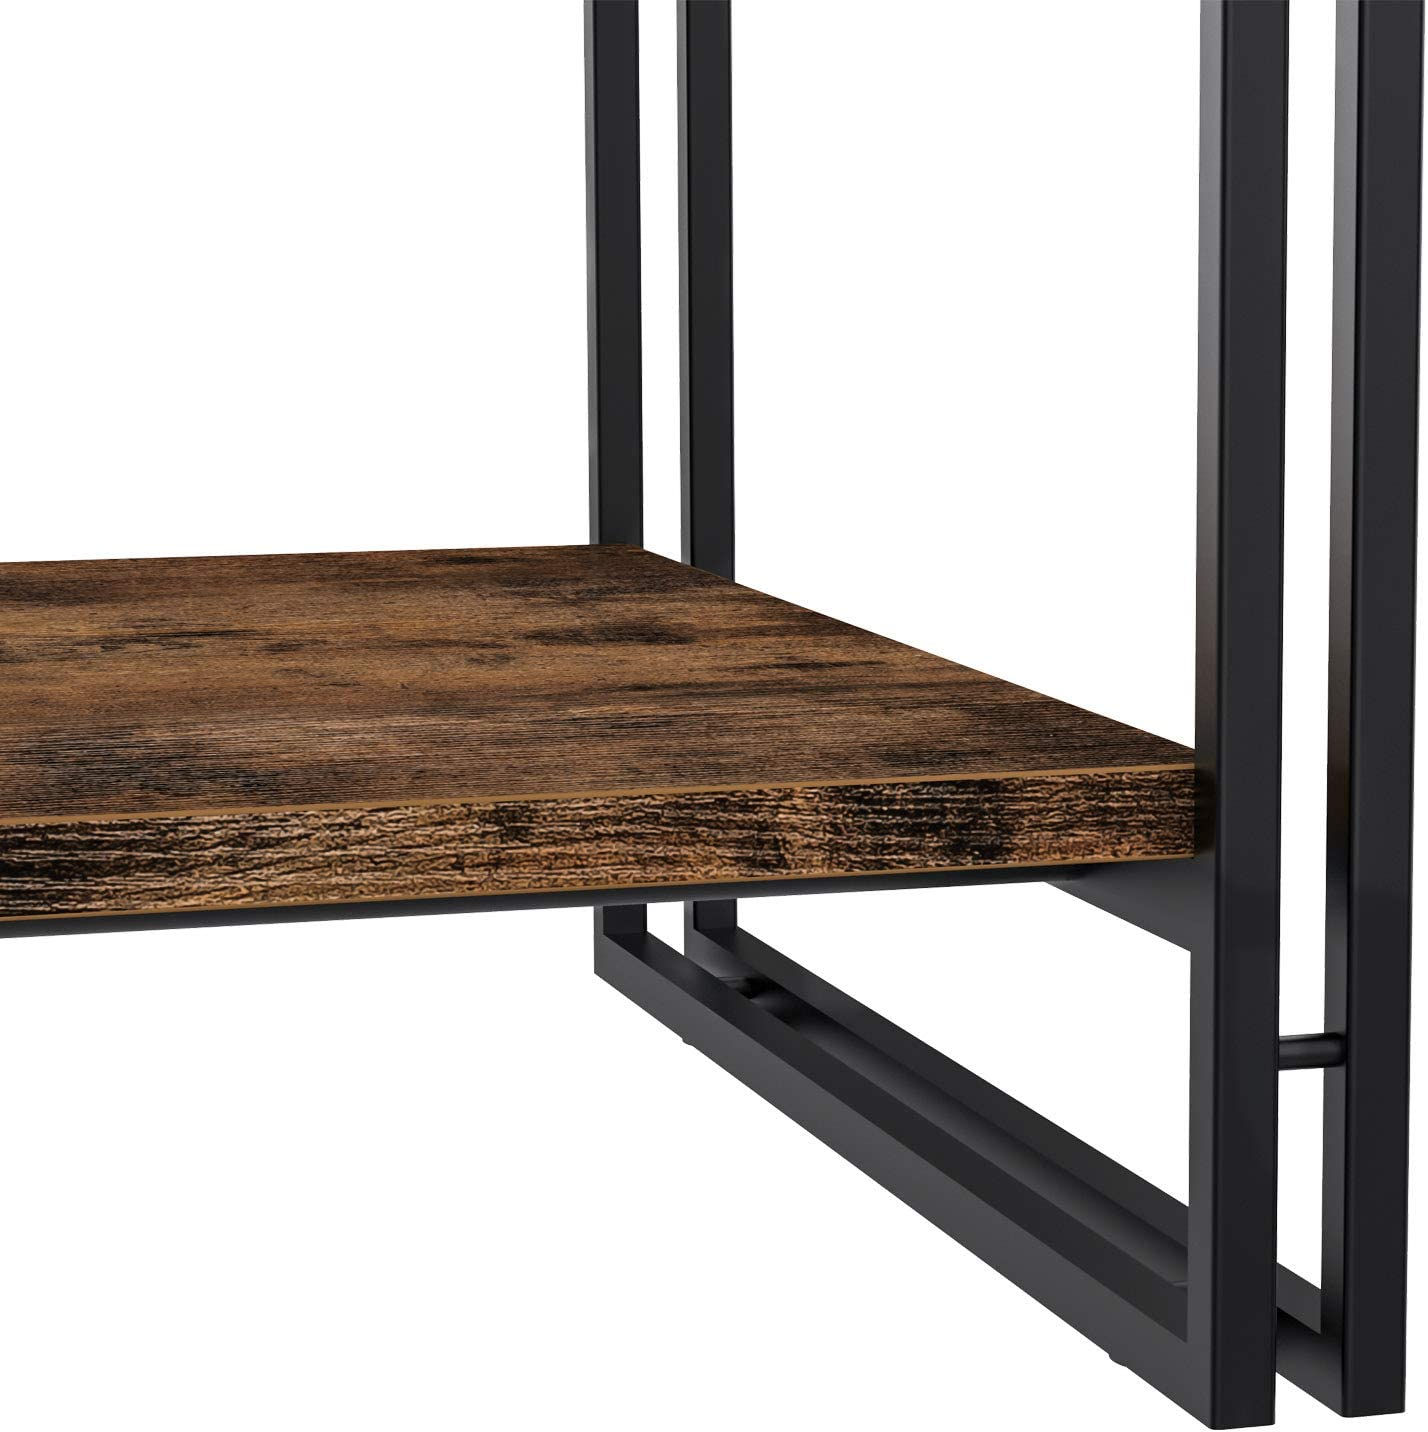 """IRONCK Industrial Coffee Table for Living Room, with 1.58"""" Thicker Tabletop, Eco-Friend Wood Look and Metal Living Room Table with Storage, Rustic Home Decor"""